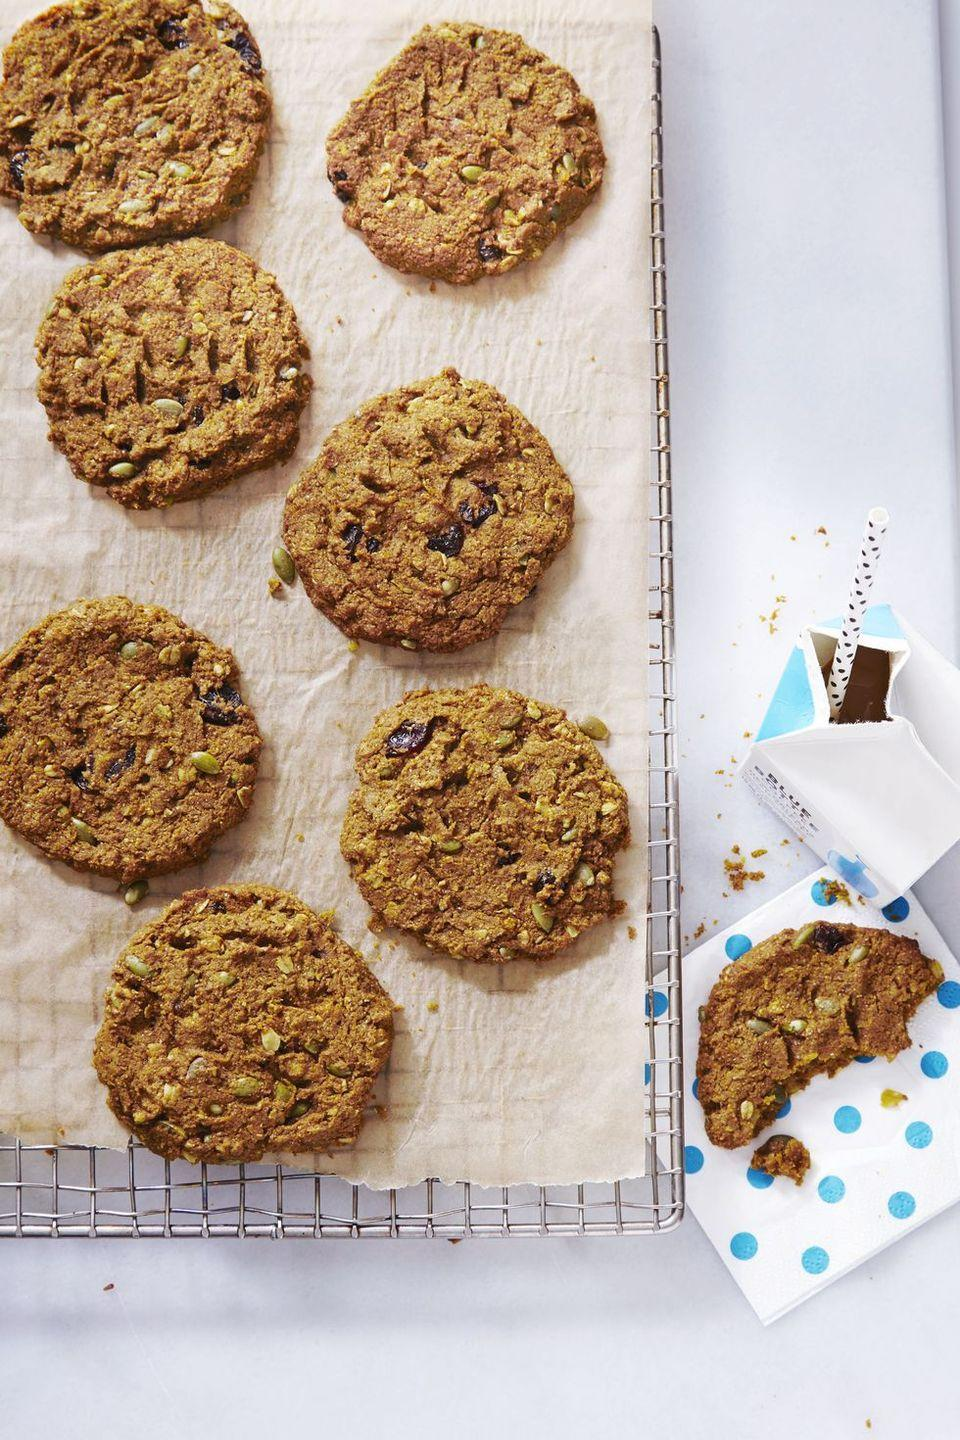 "<p>Tell us: Who <em>wouldn't </em>want to eat cookies for breakfast?</p><p><em><a href=""https://www.goodhousekeeping.com/food-recipes/dessert/a35274/pumpkin-cherry-breakfast-cookies/"" rel=""nofollow noopener"" target=""_blank"" data-ylk=""slk:Get the recipe for Pumpkin-Cherry Breakfast Cookies »"" class=""link rapid-noclick-resp"">Get the recipe for Pumpkin-Cherry Breakfast Cookies »</a></em></p><p><strong>RELATED: </strong><a href=""https://www.goodhousekeeping.com/food-recipes/dessert/g32815642/fall-cookies/"" rel=""nofollow noopener"" target=""_blank"" data-ylk=""slk:45 Tasty Fall Cookies to Get You in the Pumpkin Spice Spirit"" class=""link rapid-noclick-resp"">45 Tasty Fall Cookies to Get You in the Pumpkin Spice Spirit</a></p>"